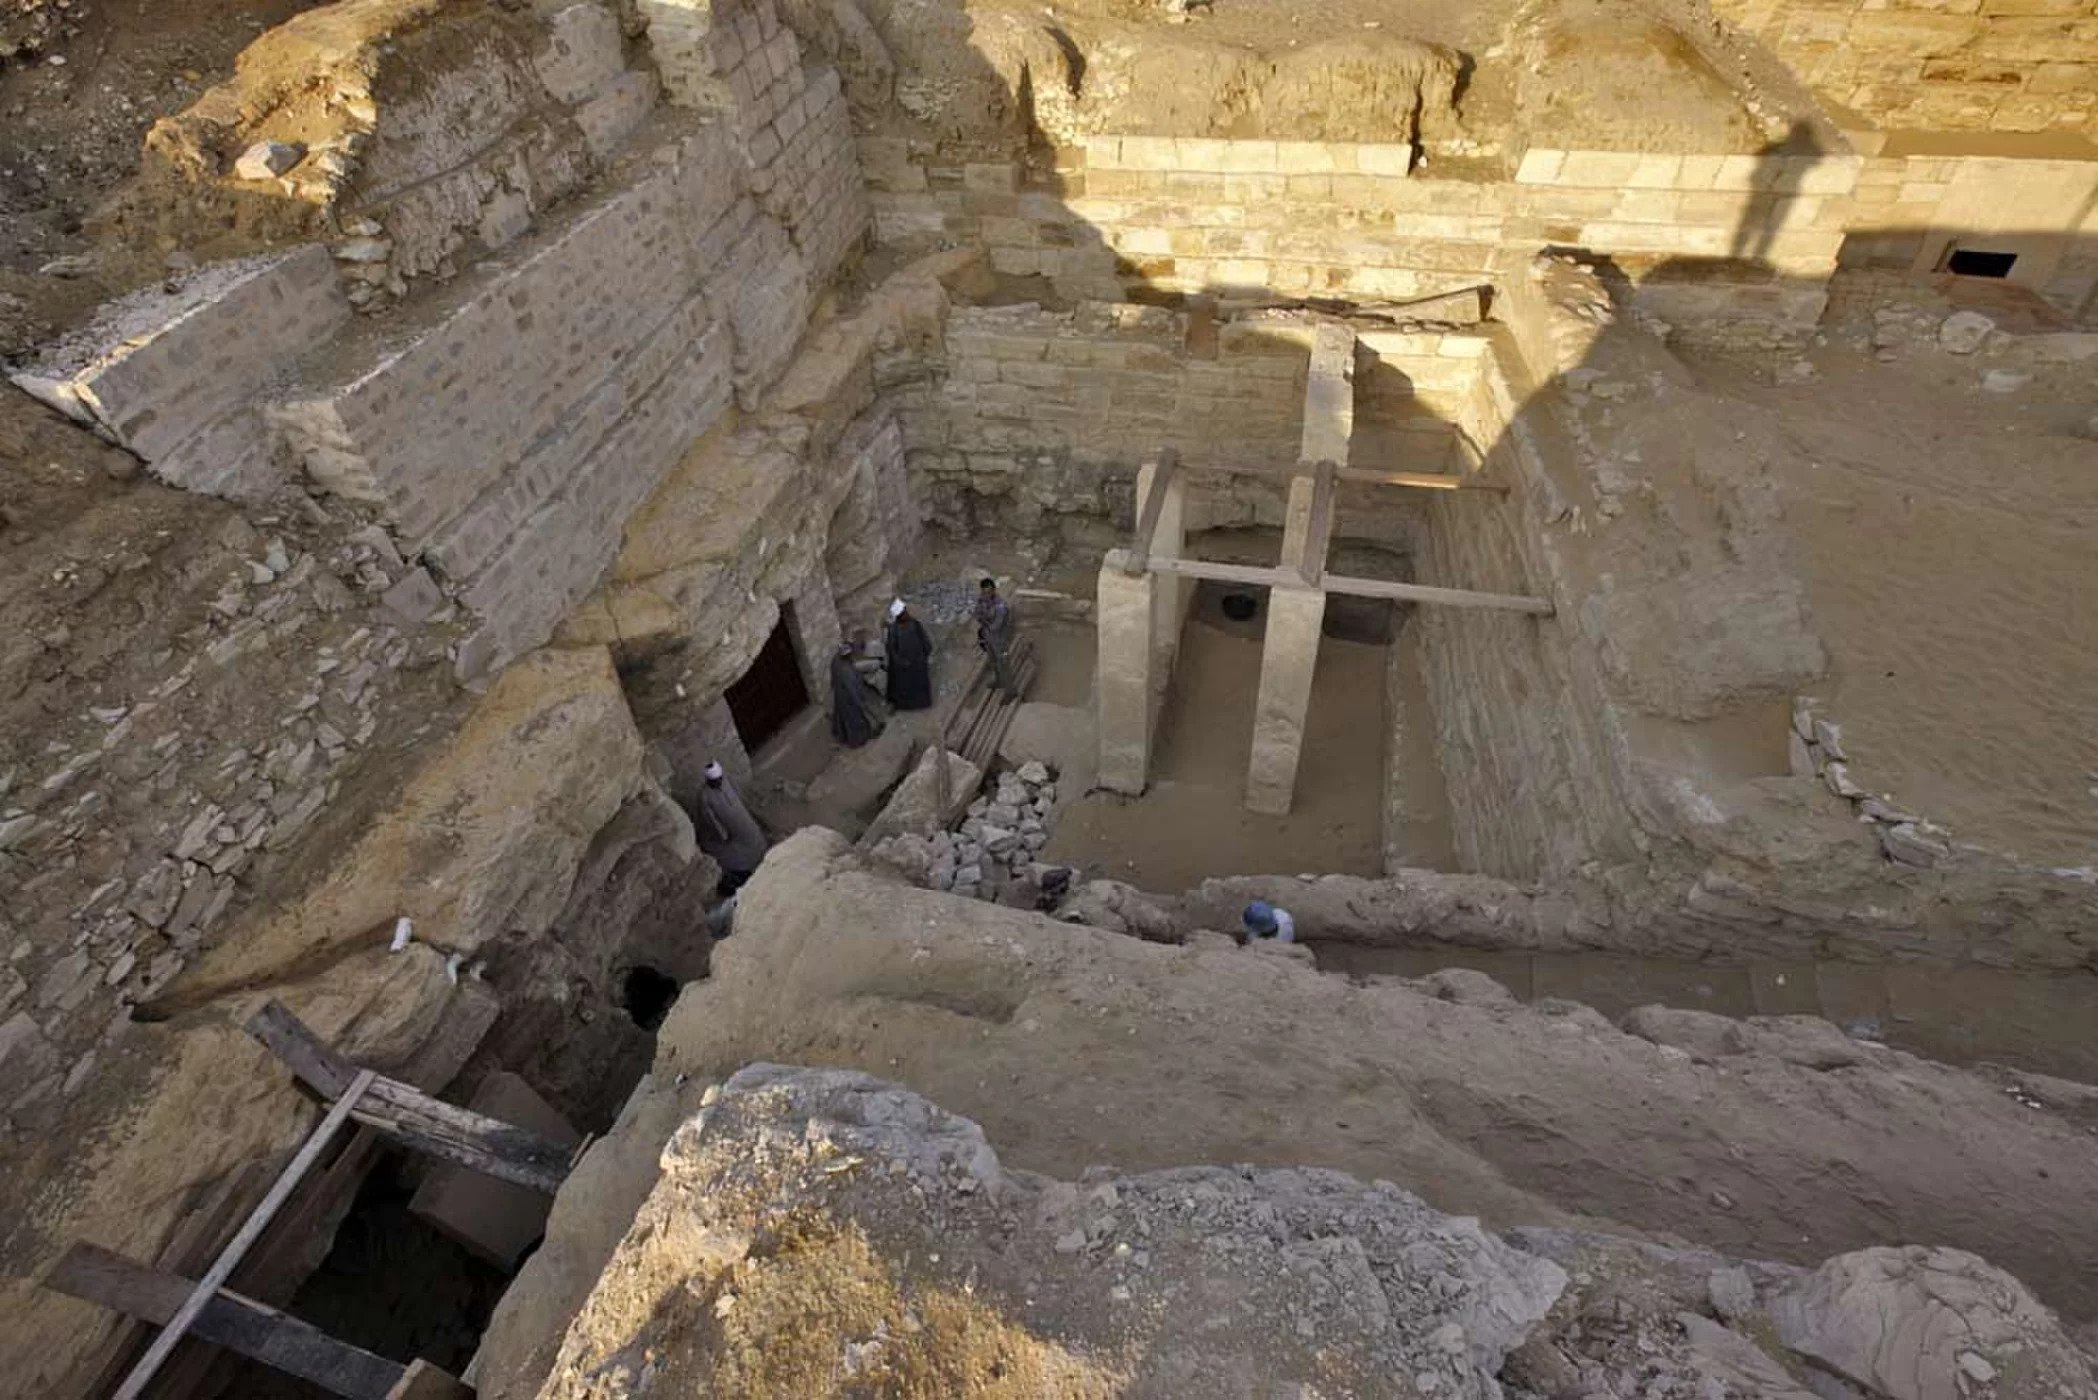 Scientists have unearthed the tomb of an ancient Egyptian princess, Sheretnebty, and four surrounding tombs of high officials, all in a court in Abusir South, south of Cairo.